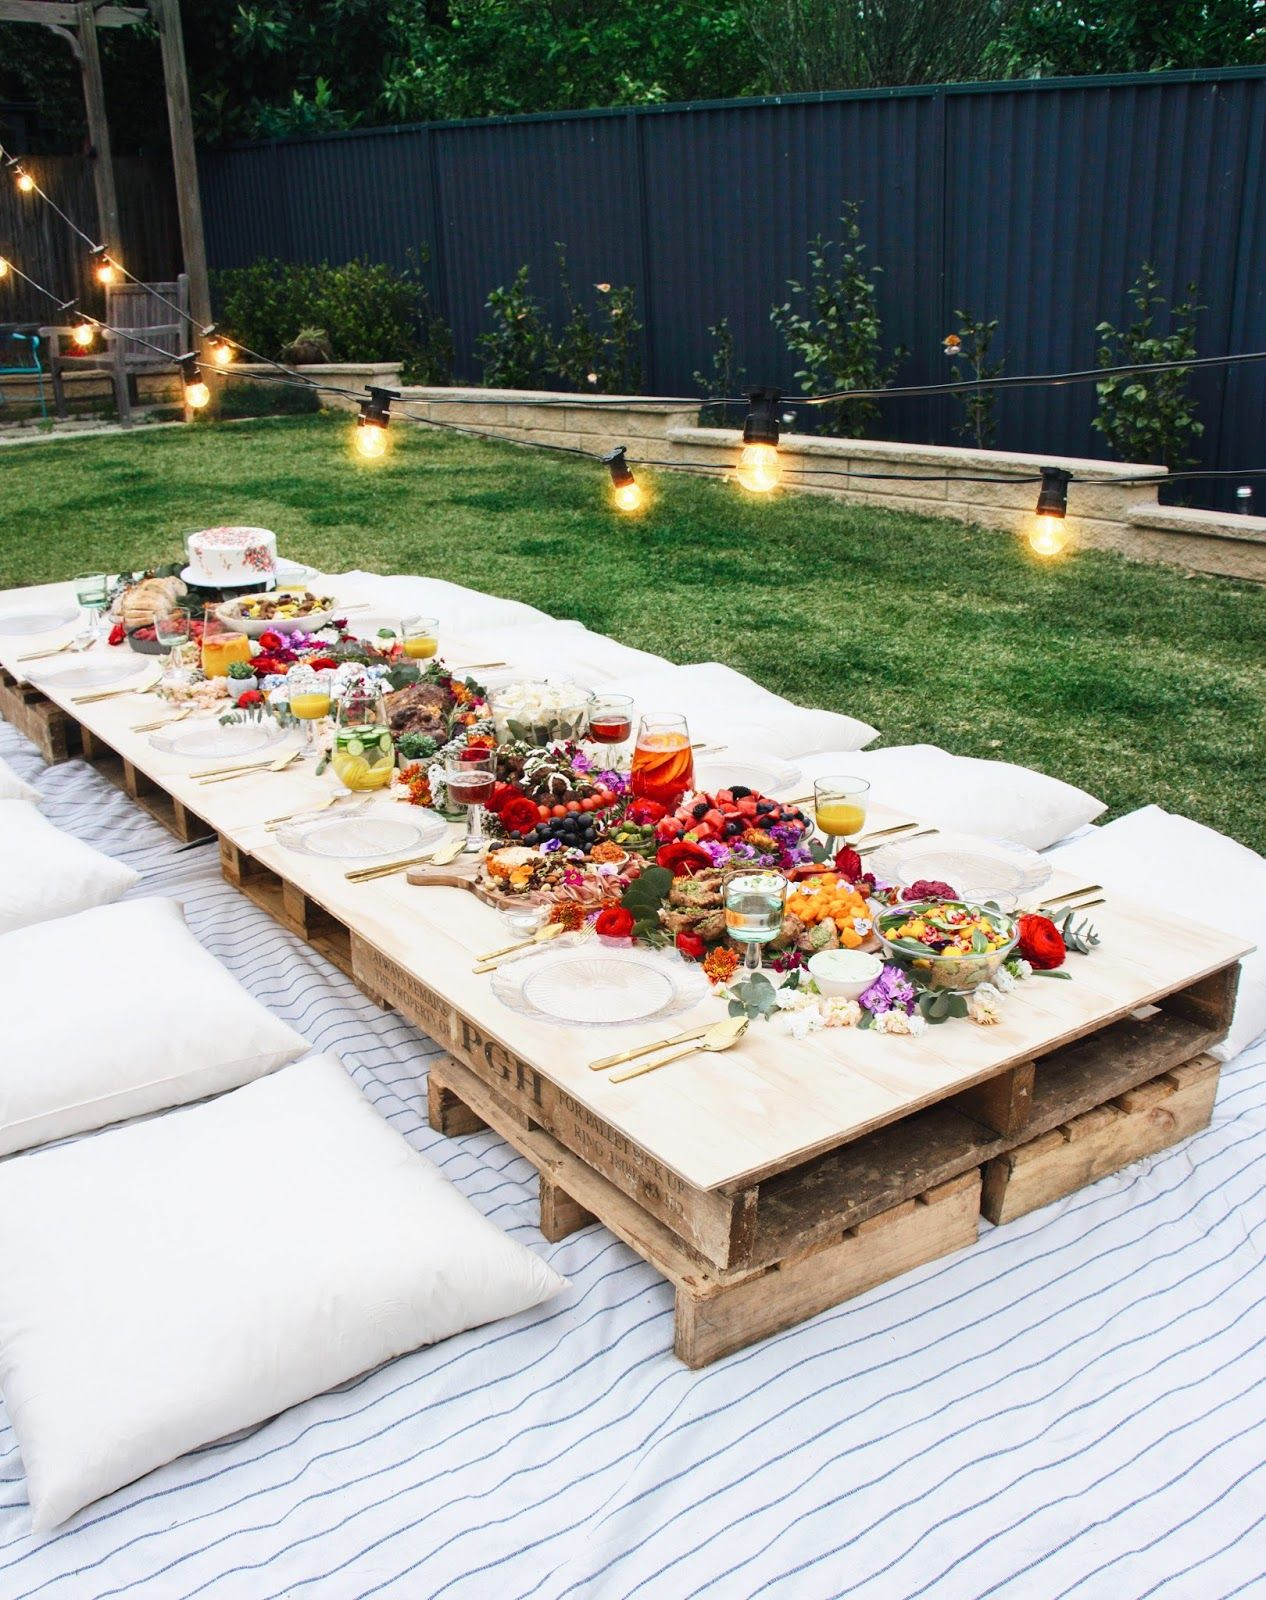 Picnic Themed Decorations Must See Backyard Party Ideas For A Relaxing And Luxurious